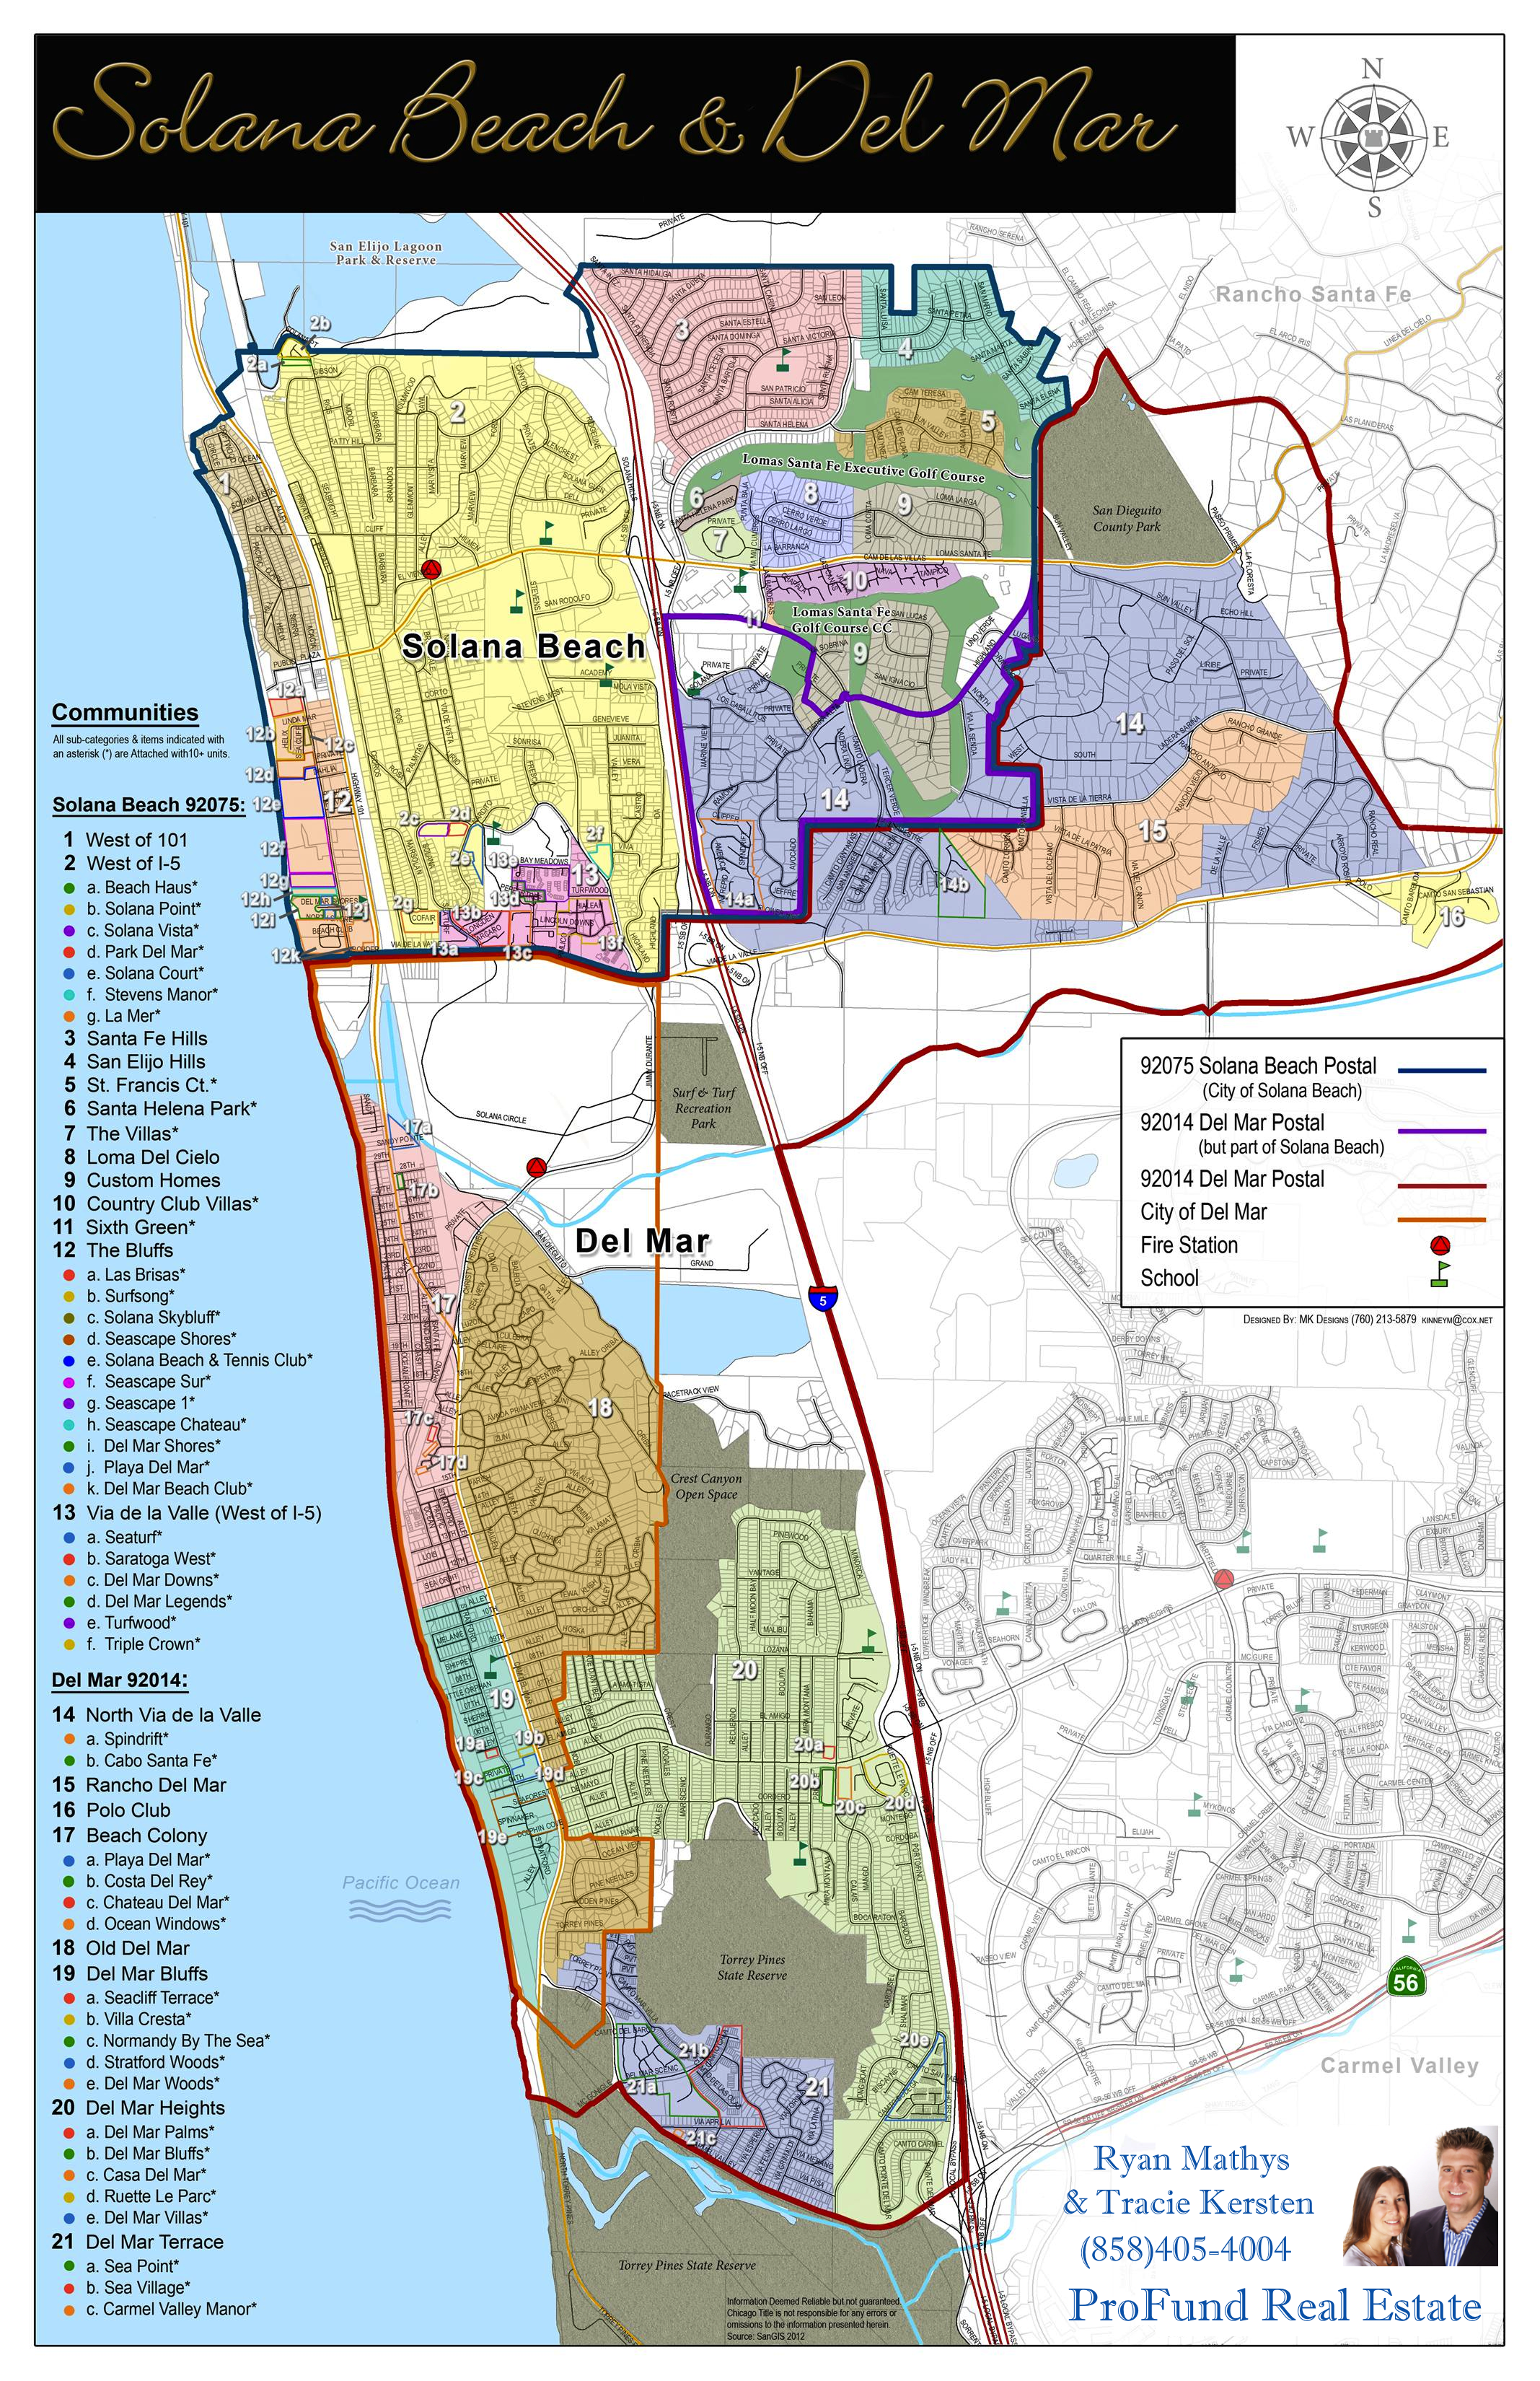 Map Of Solana Beach And Del Mar